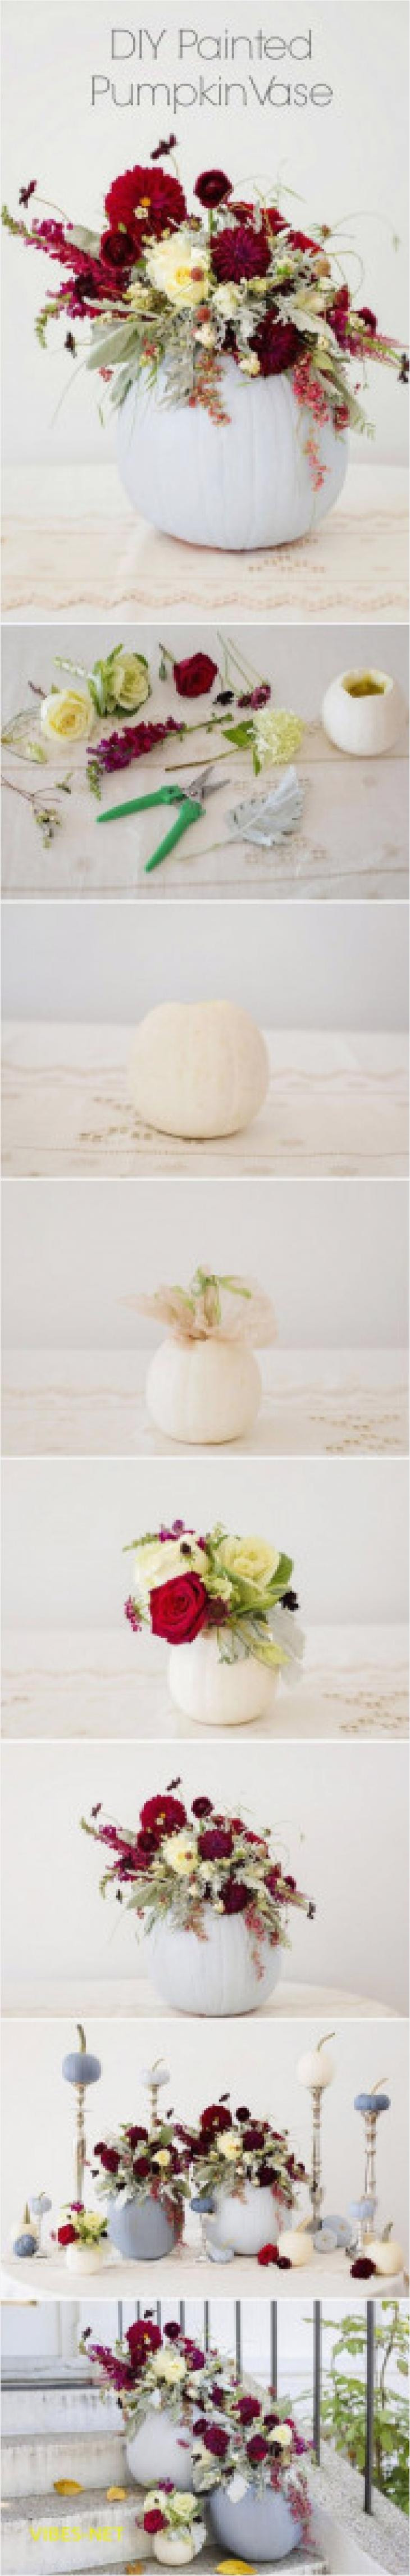 14 Recommended Glass Pumpkin Vase